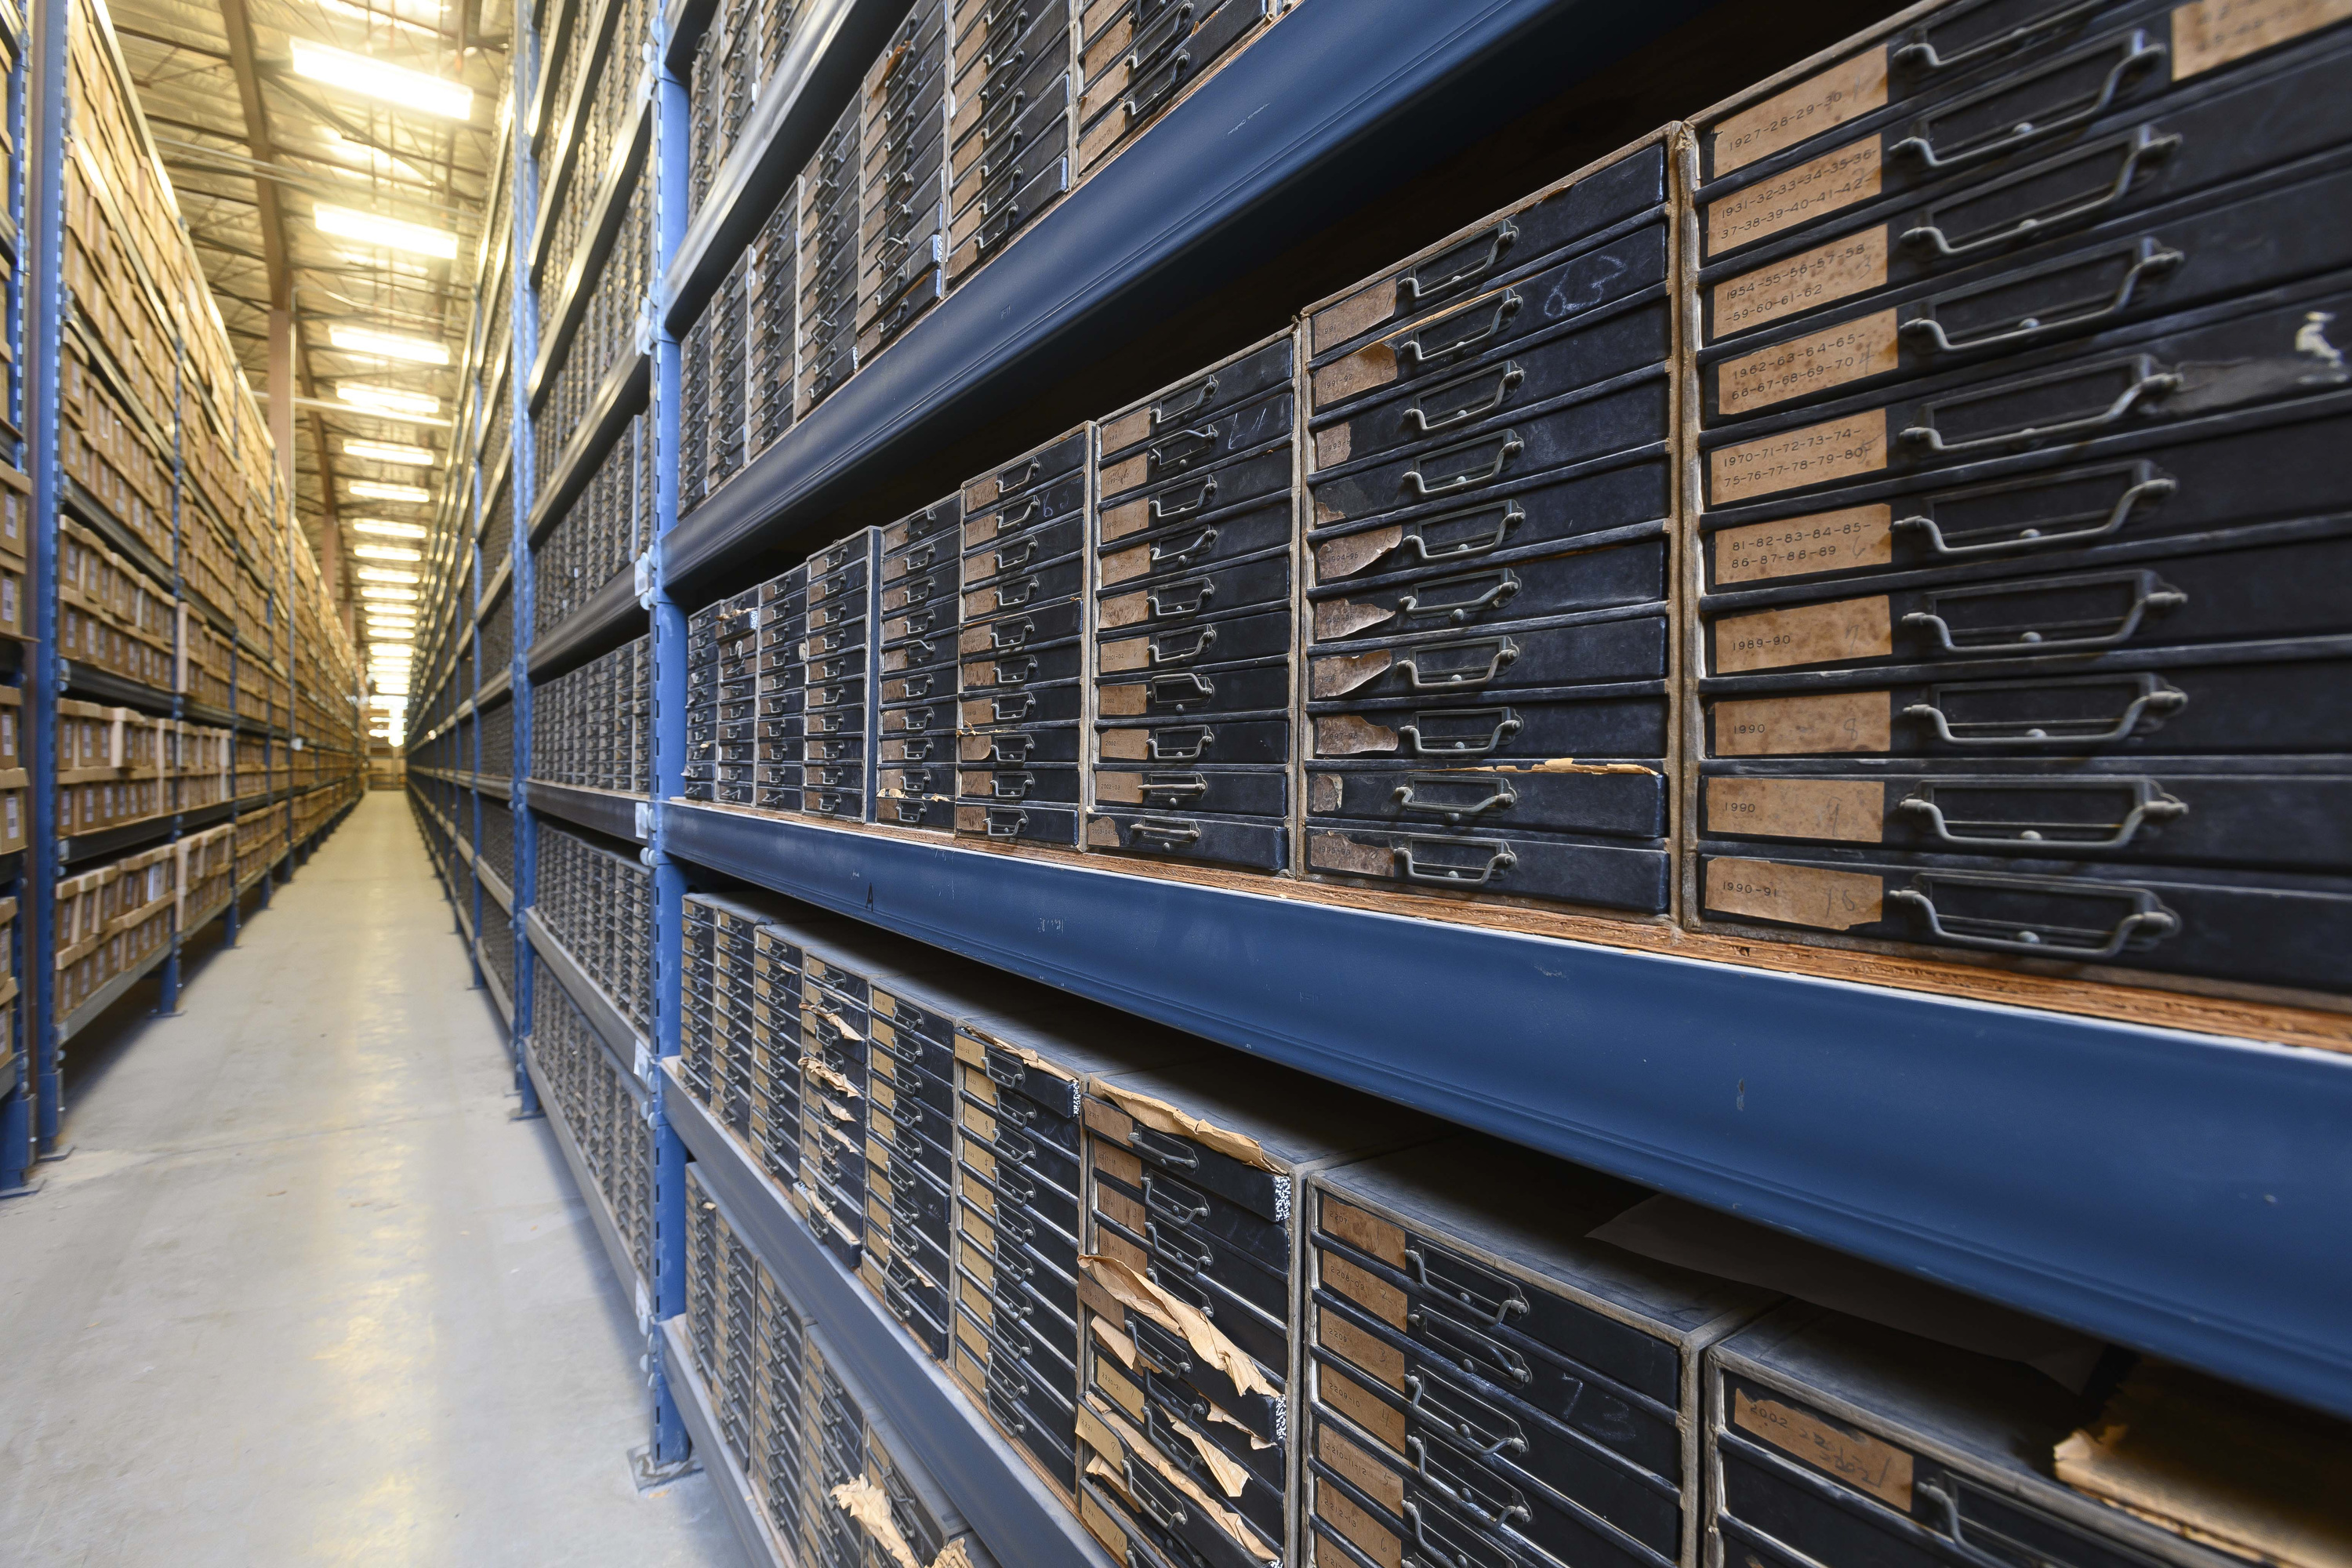 Rows 15 feet high with small drawers containing the cuttings.